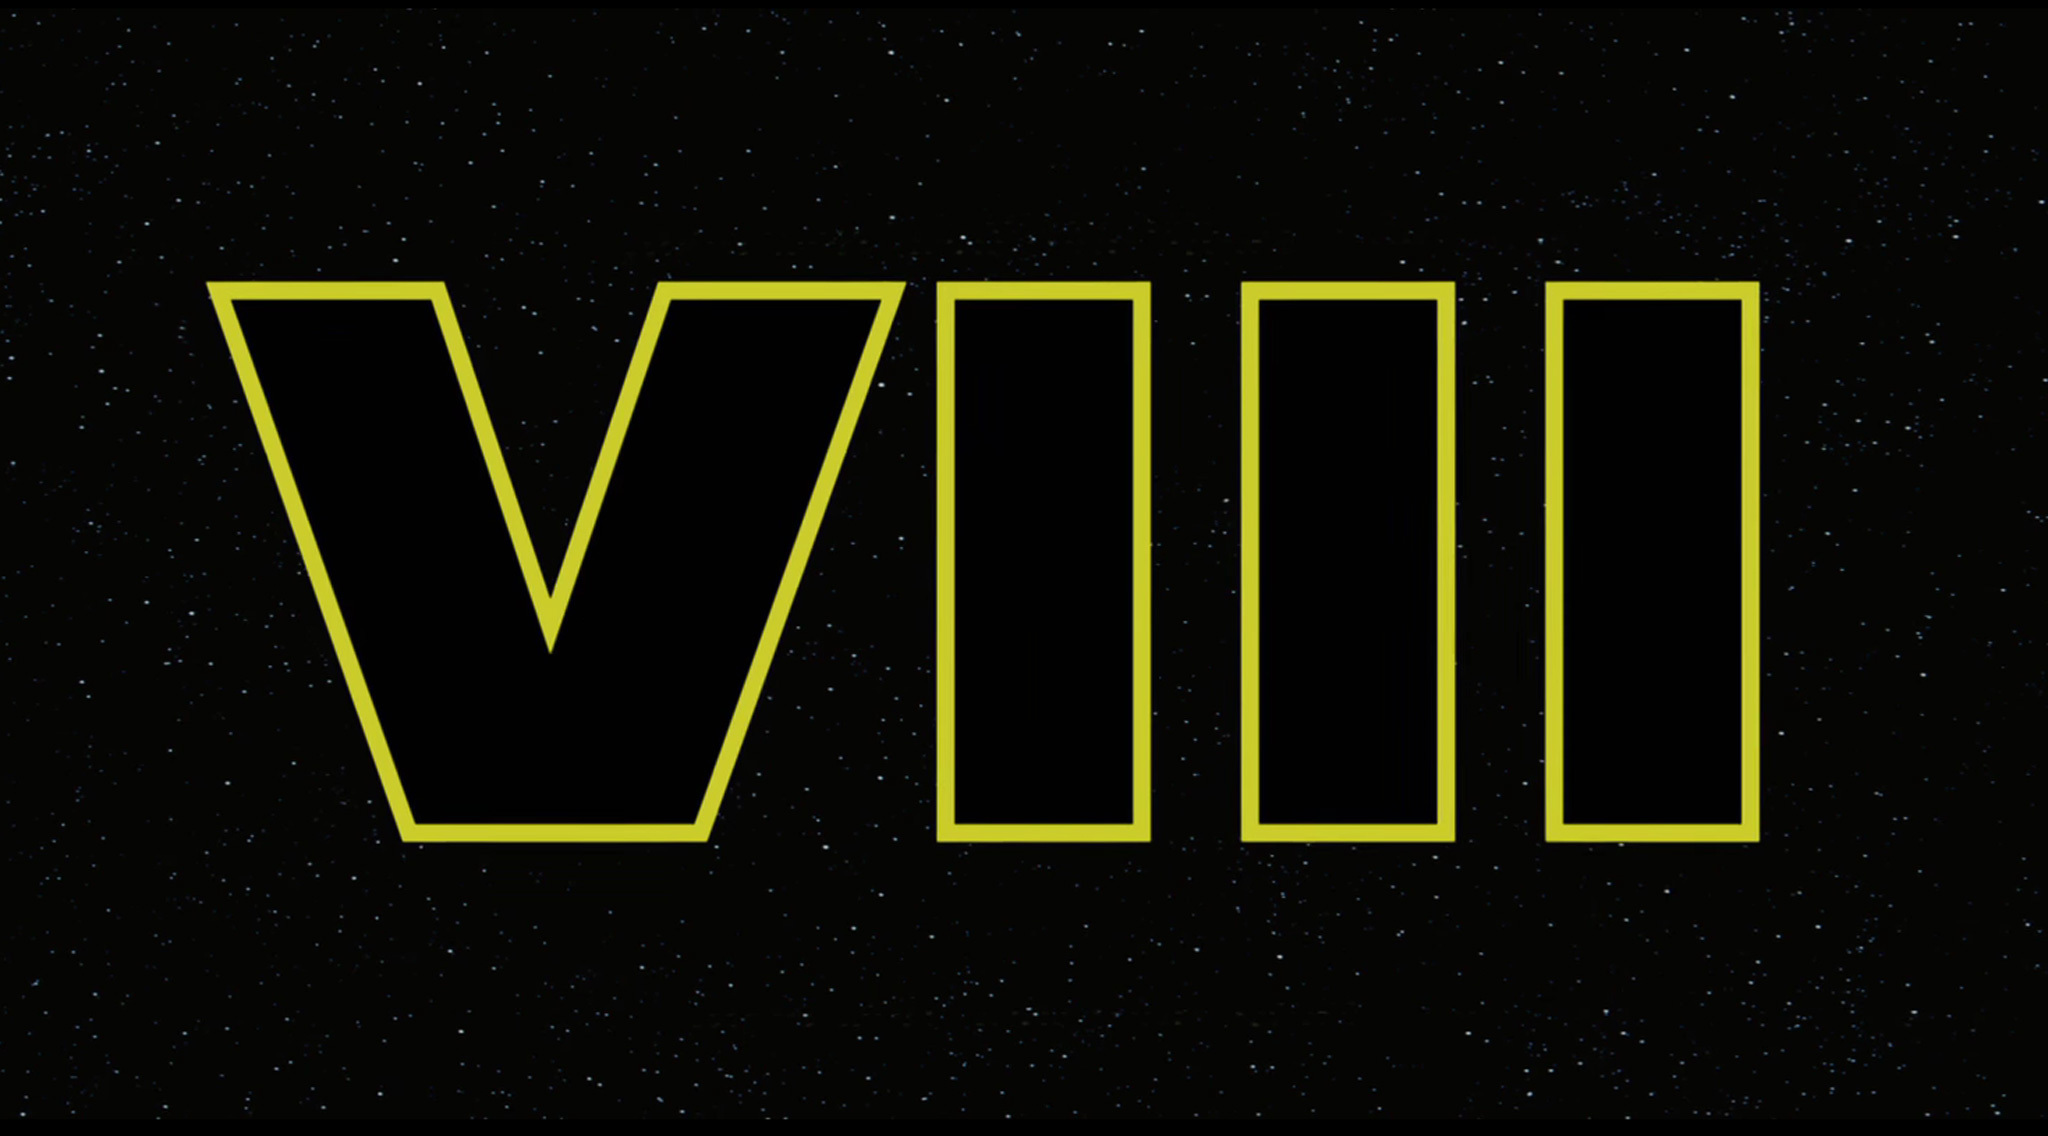 Six thingswe know (or suspect)about 'Star Wars Episode VIII'